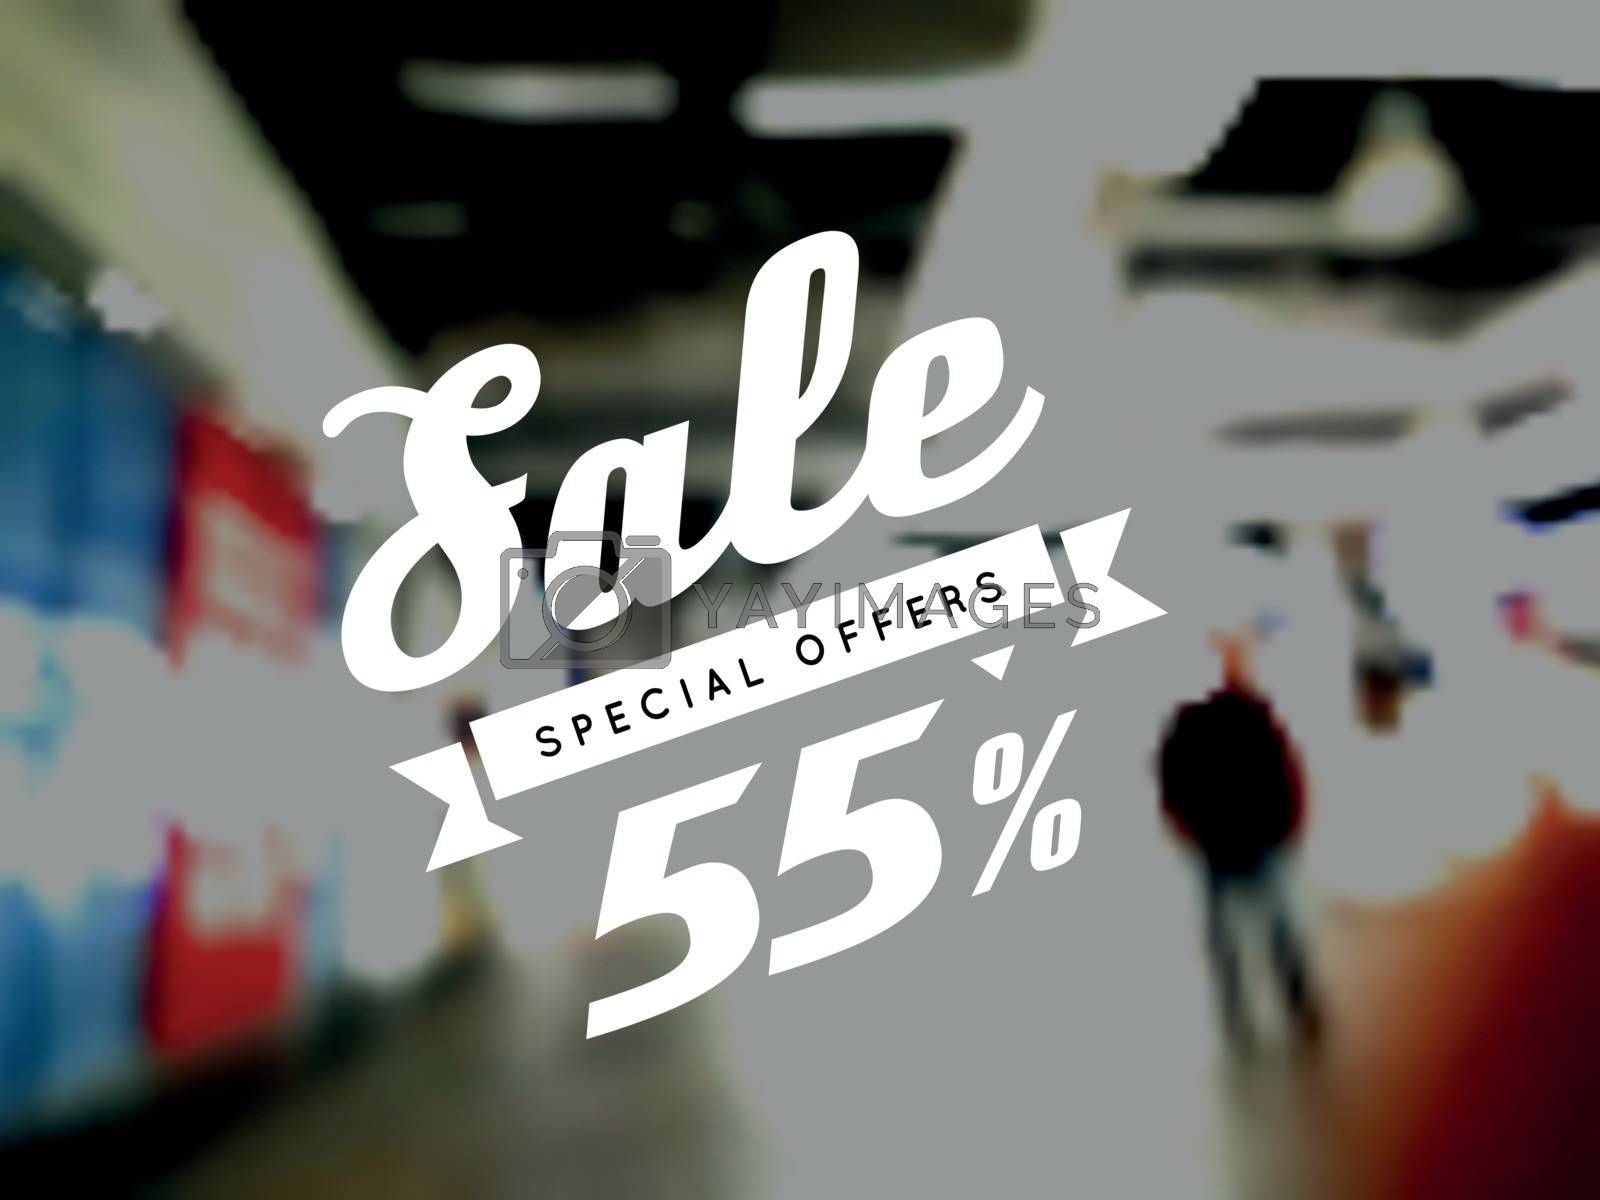 Sale, vector illustration on blurry background. Discounts and special offers